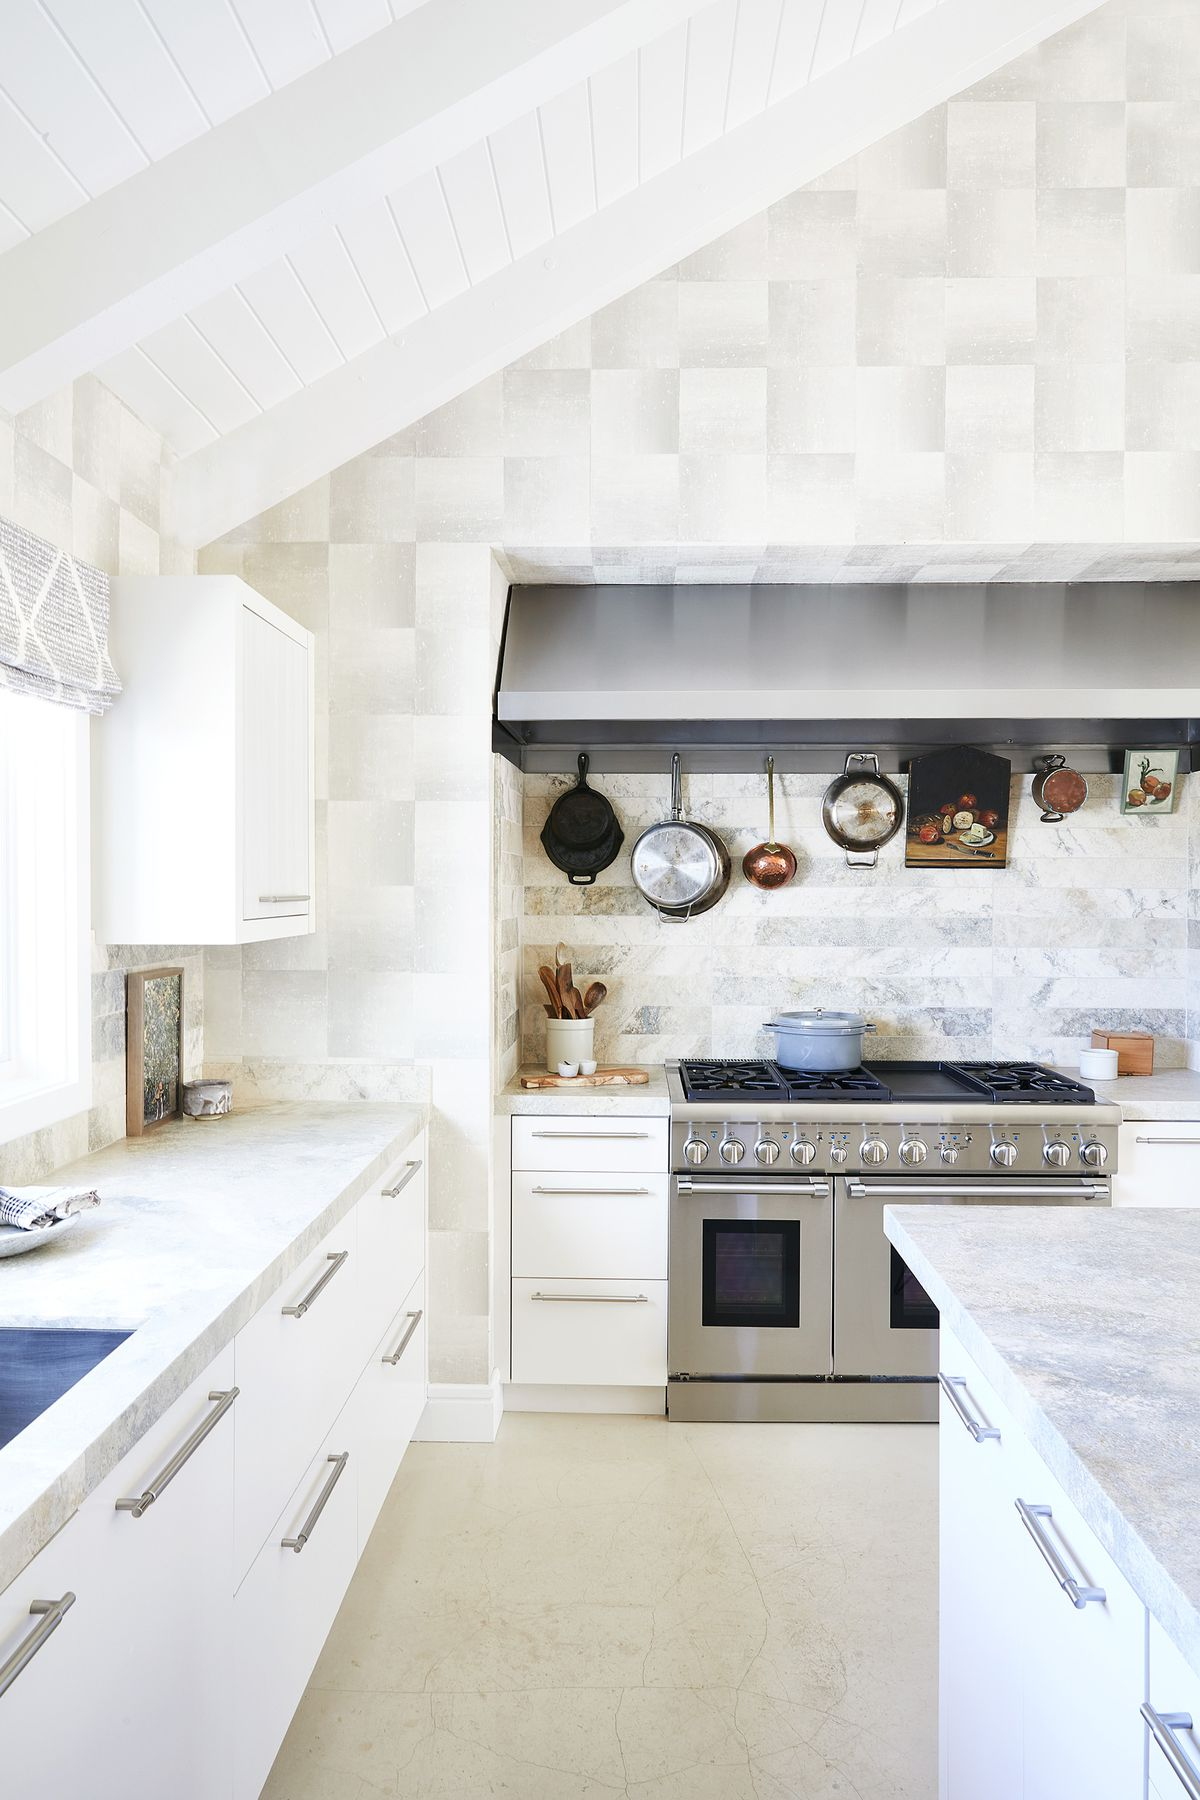 A modern kitchen with a white-painted exposed beam ceiling, gray marble countertops, white cabinets, and stainless-steel range with a stainless steel hood. Assorted pots and pans hang from the backsplash.